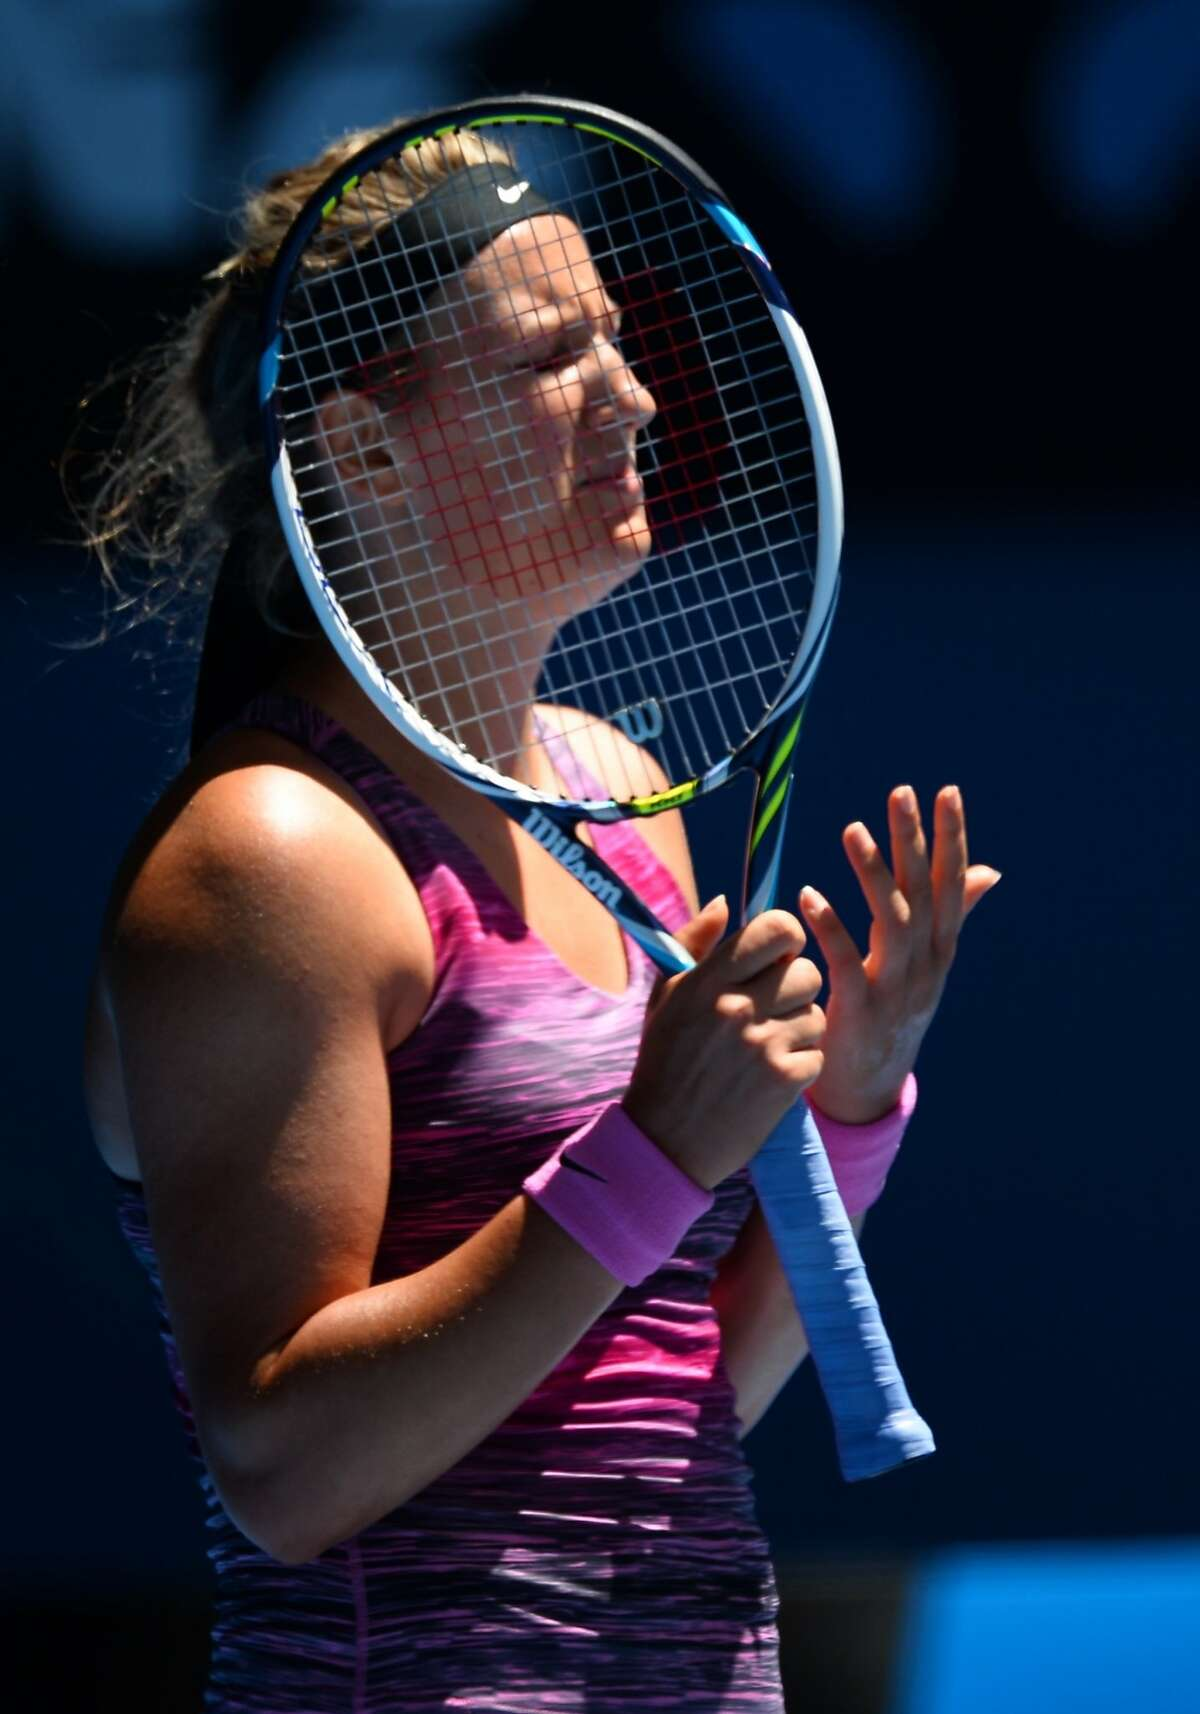 Victoria Azarenka of Belarus reacts during her women's singles match against Agnieszka Radwanska of Poland on day 10 of the 2014 Australian Open tennis tournament in Melbourne on January 22, 2014. IMAGE RESTRICTED TO EDITORIAL USE - STRICTLY NO COMMERCIAL USE AFP PHOTO / WILLIAM WESTWILLIAM WEST/AFP/Getty Images